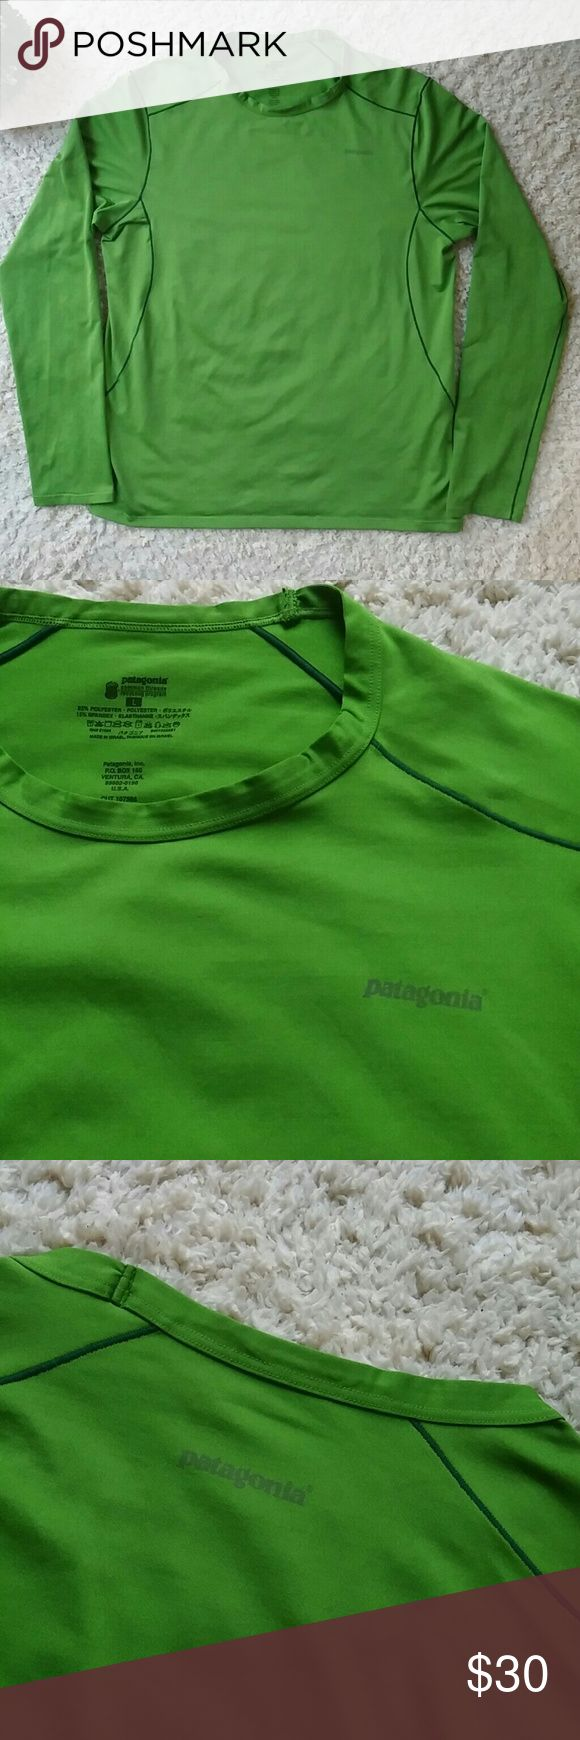 Mens Patagonia long sleeve t-shirt A very nice green color long sleeve shirt. A nice quality stretchy material. In great condition Patagonia Shirts Tees - Long Sleeve